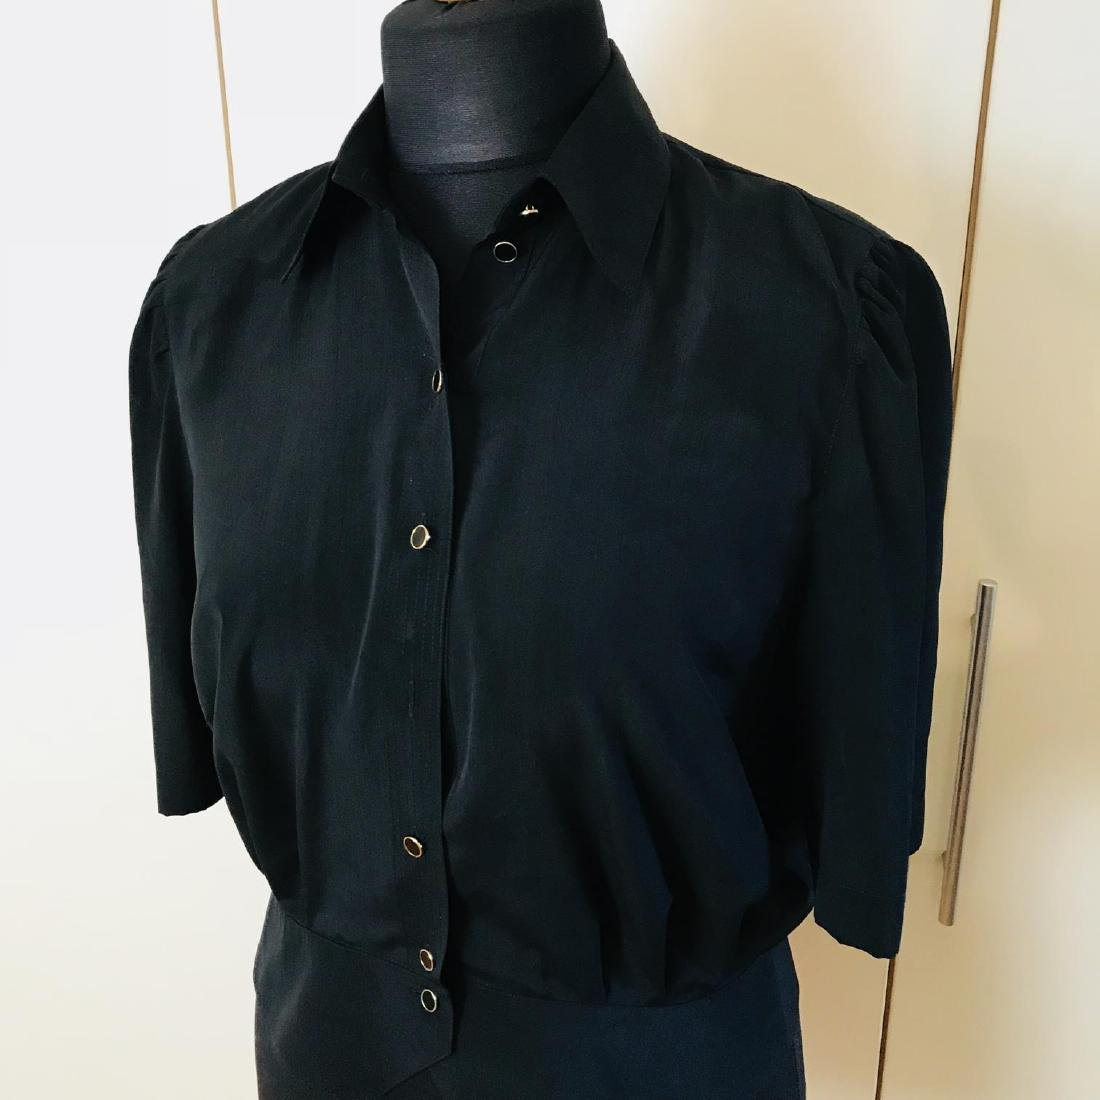 Vintage Women's Black Blouse Shirt Top Size EUR 40 US - 2